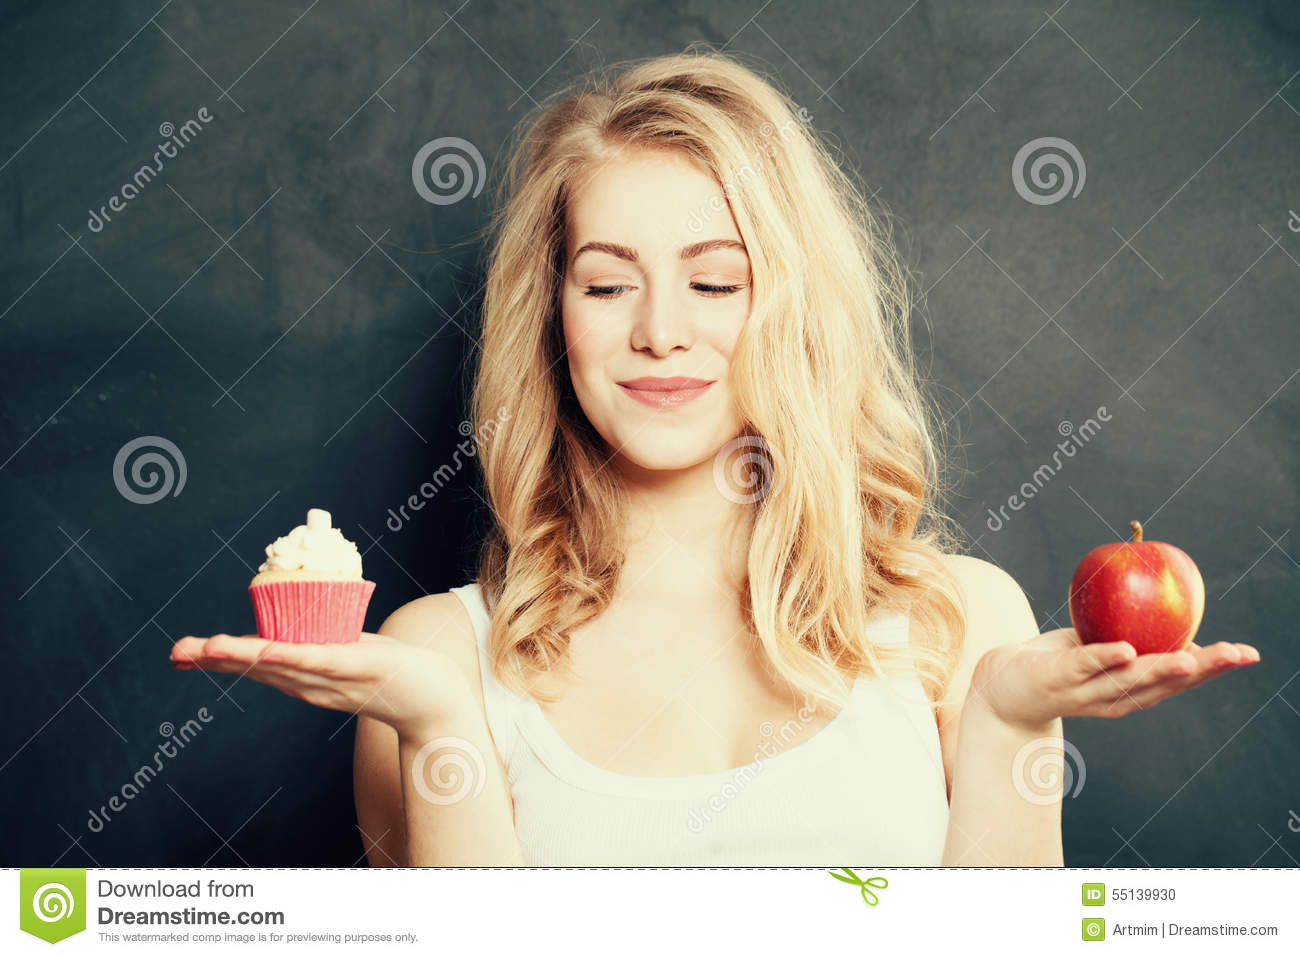 Woman with Healthy and Unhealthy Food. Difficult choice